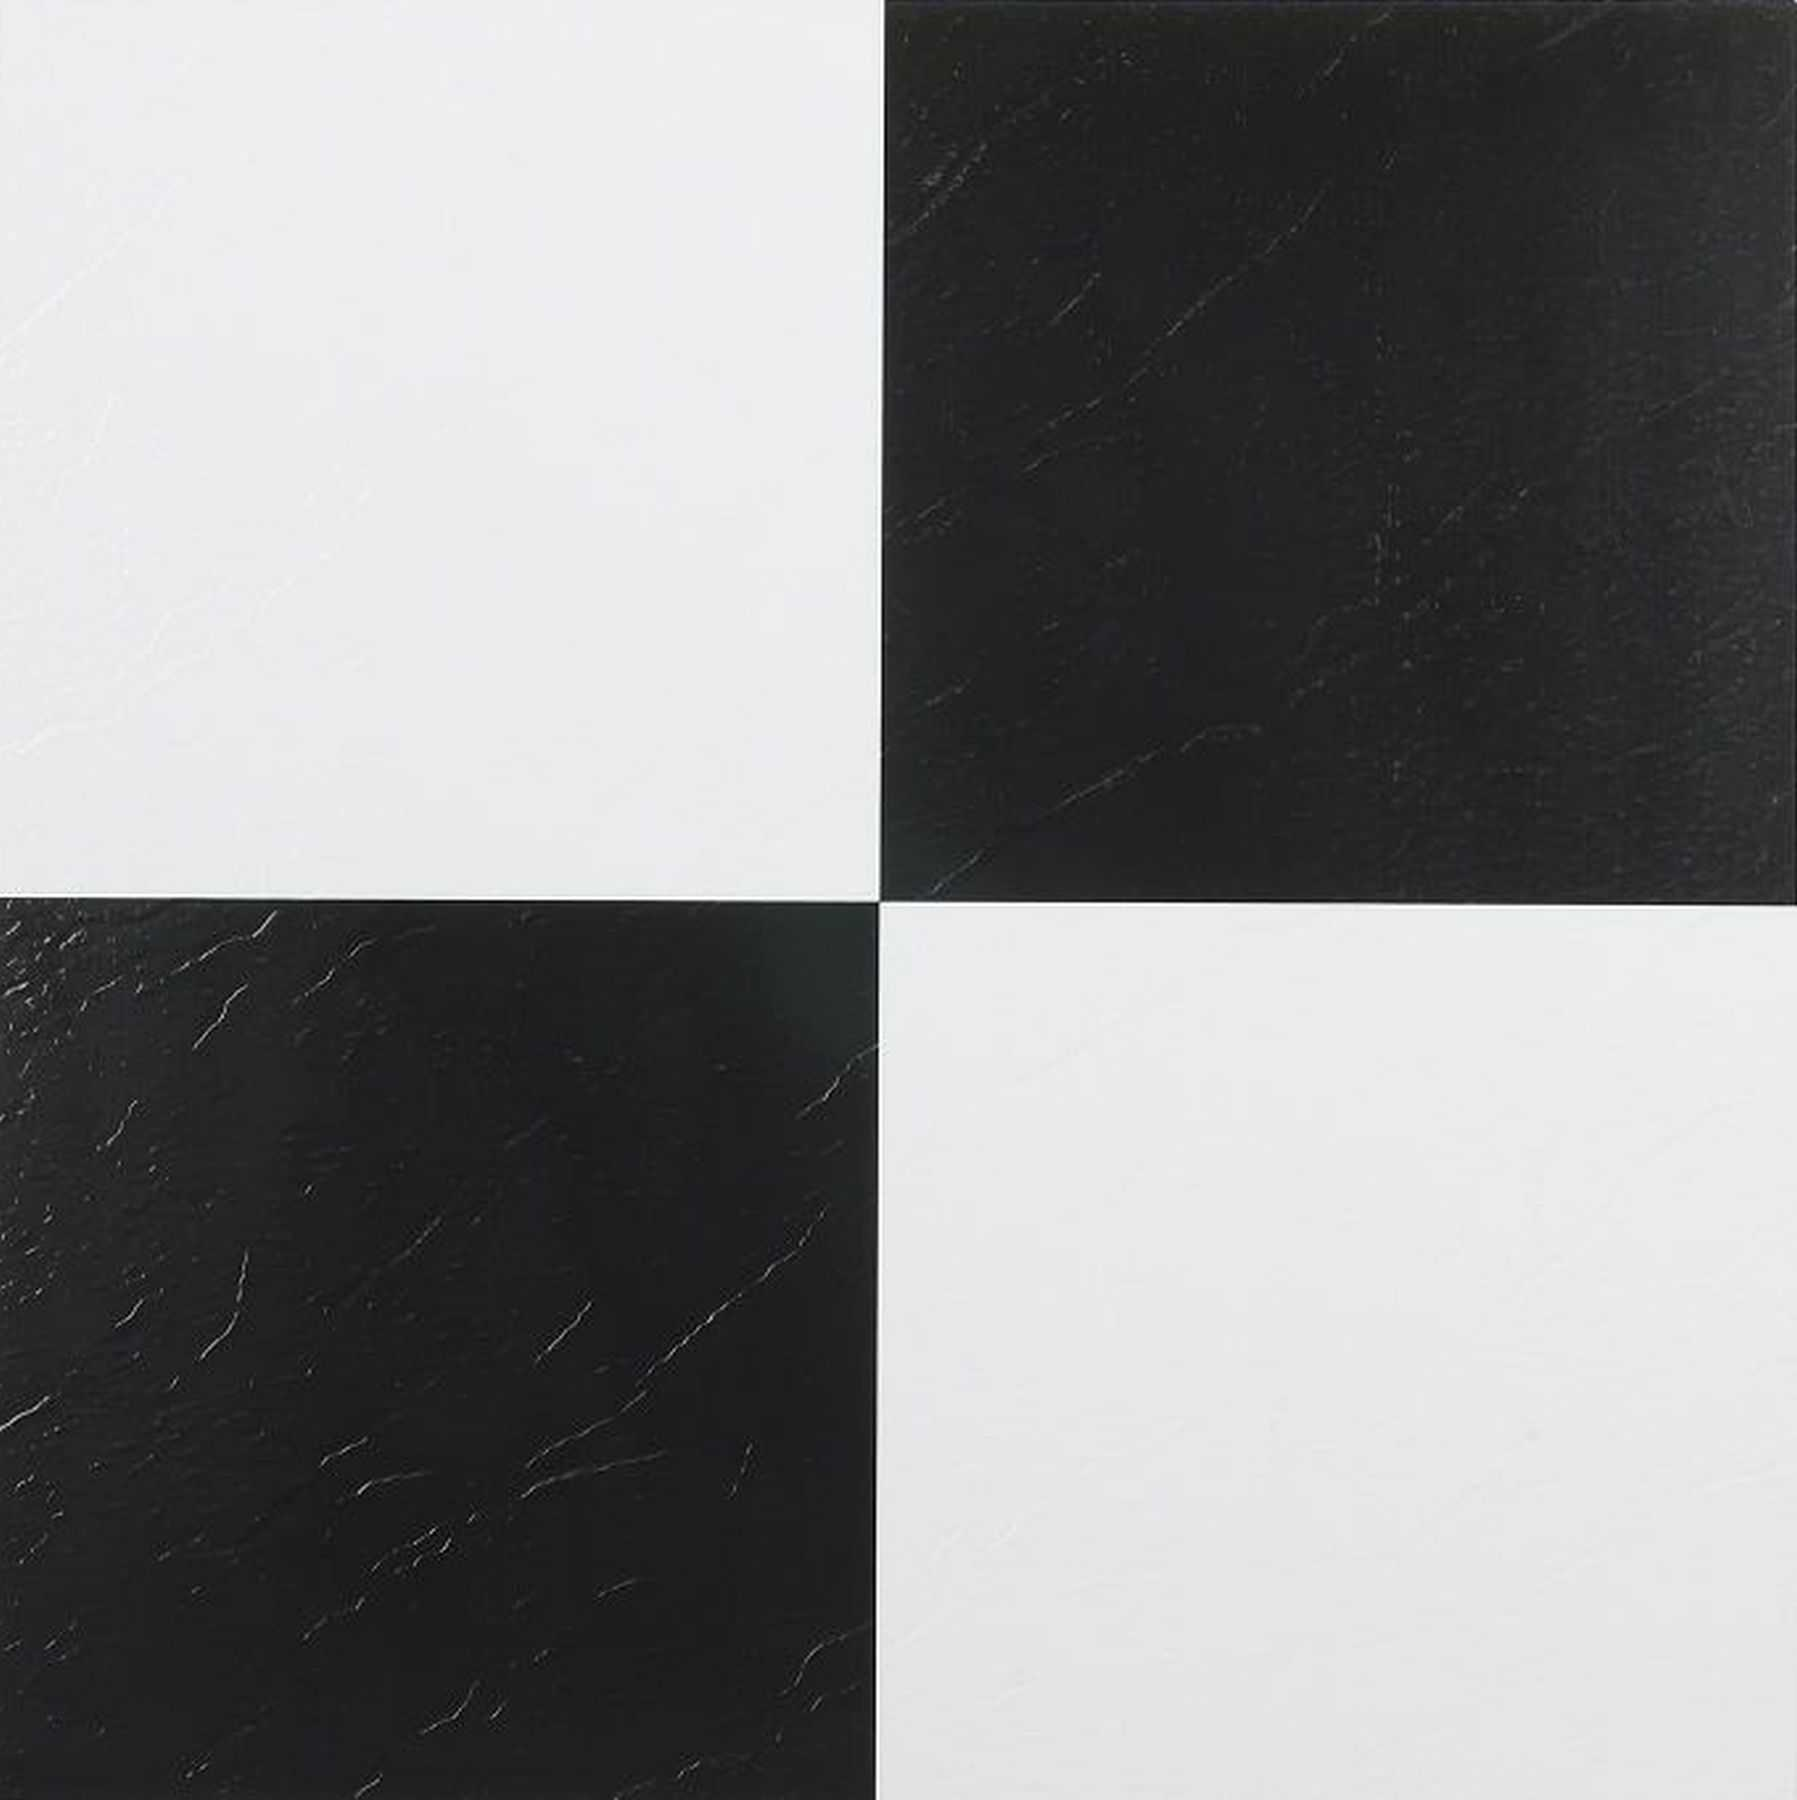 Traditional Elegance 5th Avenue Collection Black & White 12x12 Self Adhesive Vinyl Floor Tile - 45 Tiles/45 sq. Ft